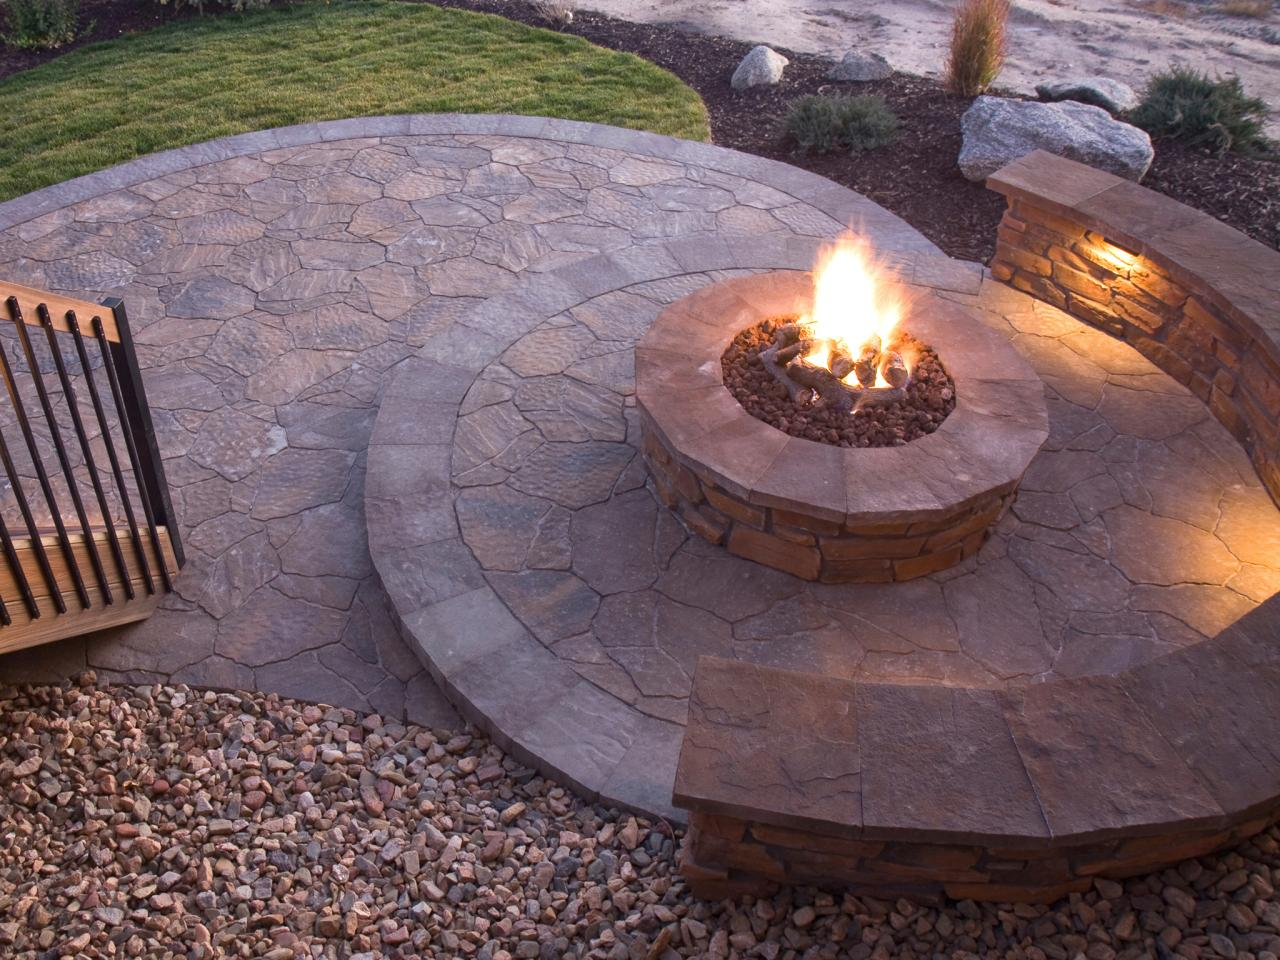 How to Plan for Building a Fire Pit | HGTV